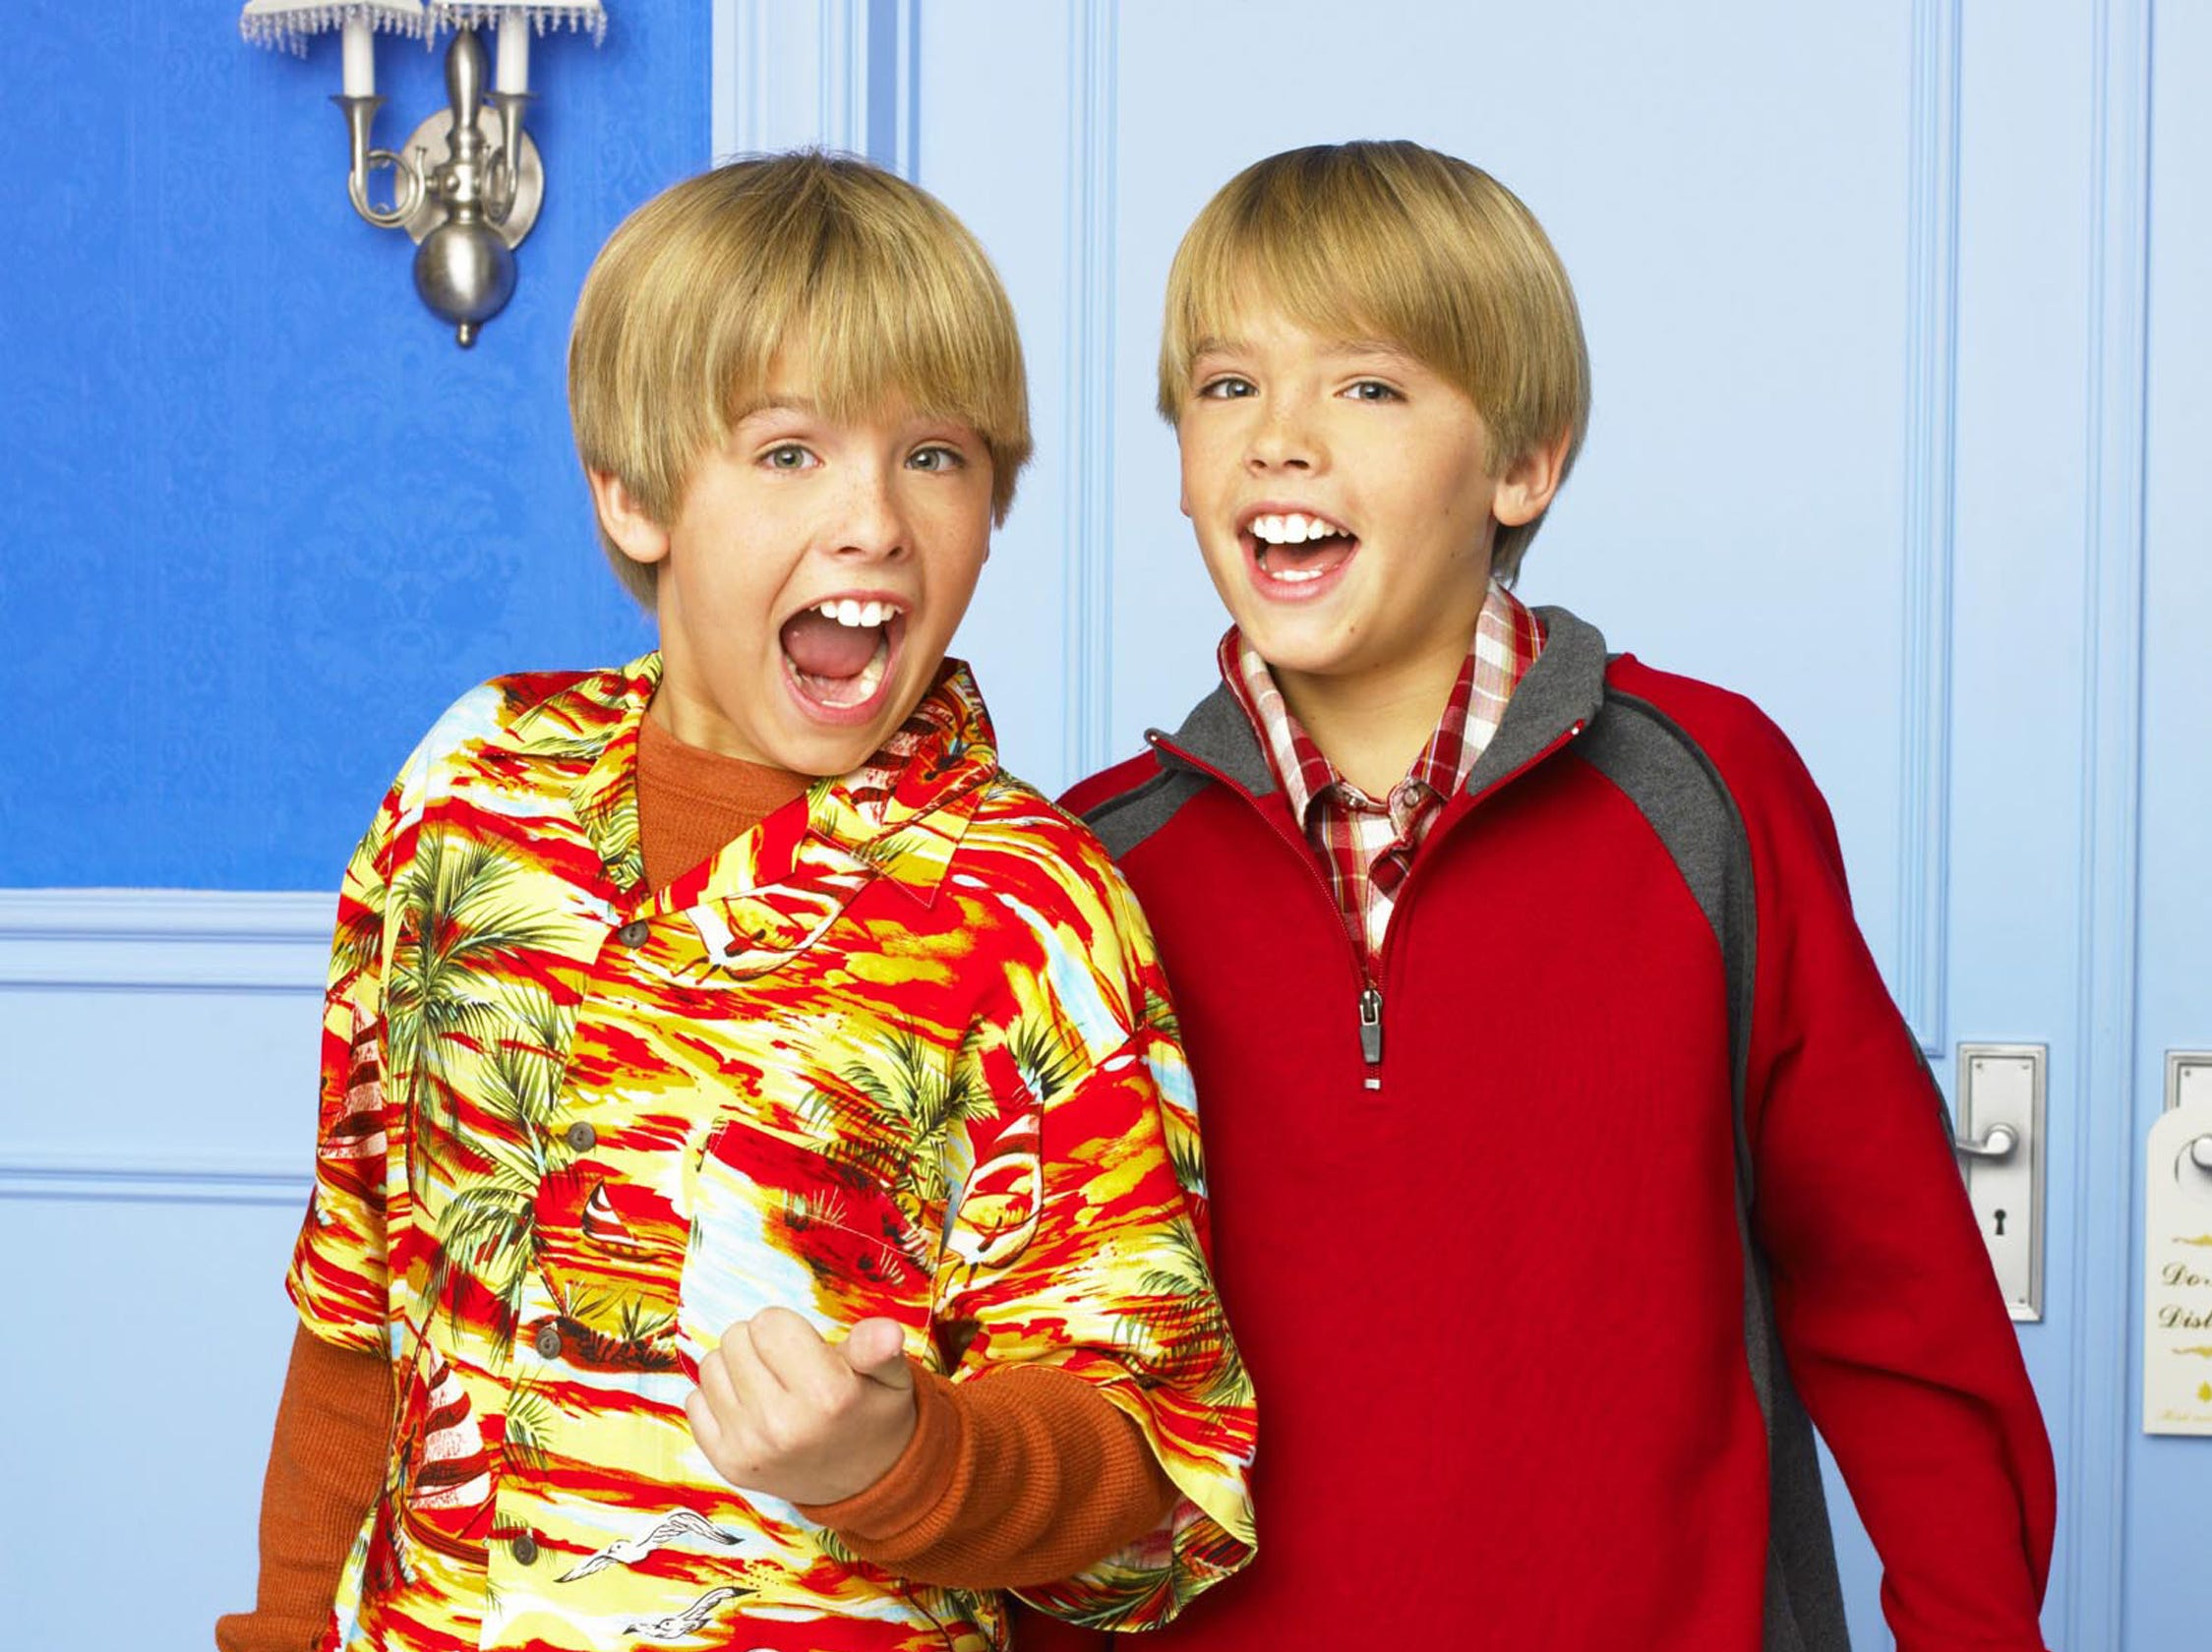 """The Suite Life of Zack & Cody"" (11:00 a.m., ET/10:00 a.m., PT), new to ABC Kids and starring identical twins Dylan and Cole Sprouse (""Big Daddy,"" ""Friends""), Ashley Tisdale and Brenda Song (Disney Channel's ""Phil of the Future"" and ""Stuck in the Suburbs""), is a situation comedy that tracks the antics of twin 12-year-old boys, Zack and Cody, whose single mom Carey (Kim Rhodes) gets a job as headlining singer at an upscale hotel in Boston and as part of her contract, an upper floor suite where they all live now.  The hotel comes complete with room service, a swimming pool, game room, candy counter and many new friends for the twins to get to know including Maddie, the candy counter clerk and frequent babysitter, as well as London, the hotel owner's spoiled daughter.  To the chagrin of the hotel manager, Mr. Moseby (Phill Lewis), the twins turn the hotel into their playground, and the staff and guests into unwitting participants in the outrageous situations they manage to create.   (DISNEY)  (Via MerlinFTP Drop)"